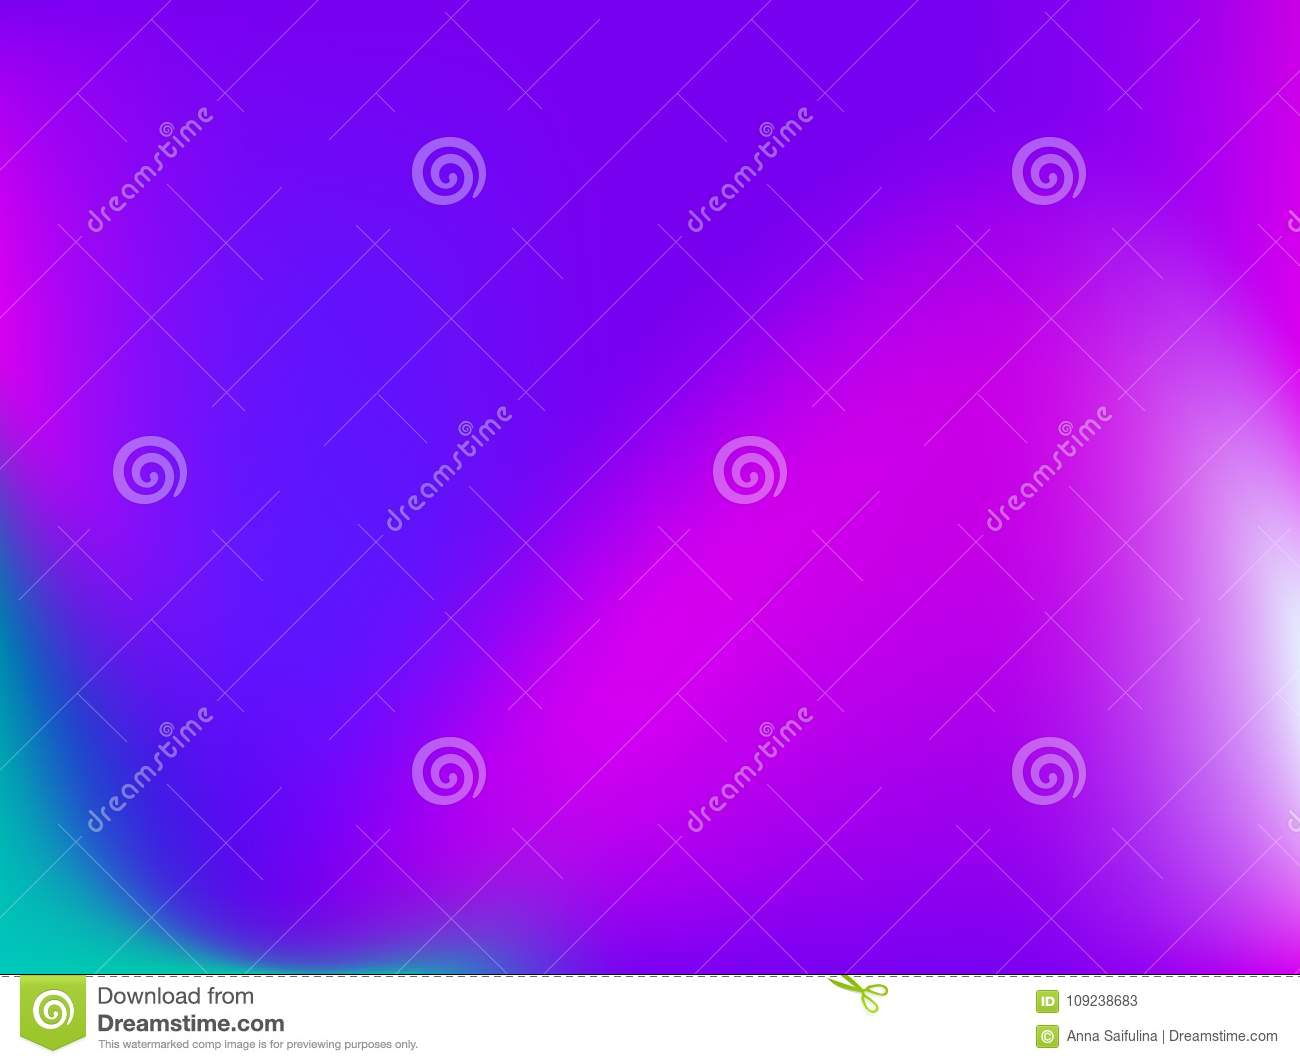 Gradient background. Vector illustration. Abstract creative concept multicolored blurred backdrop.